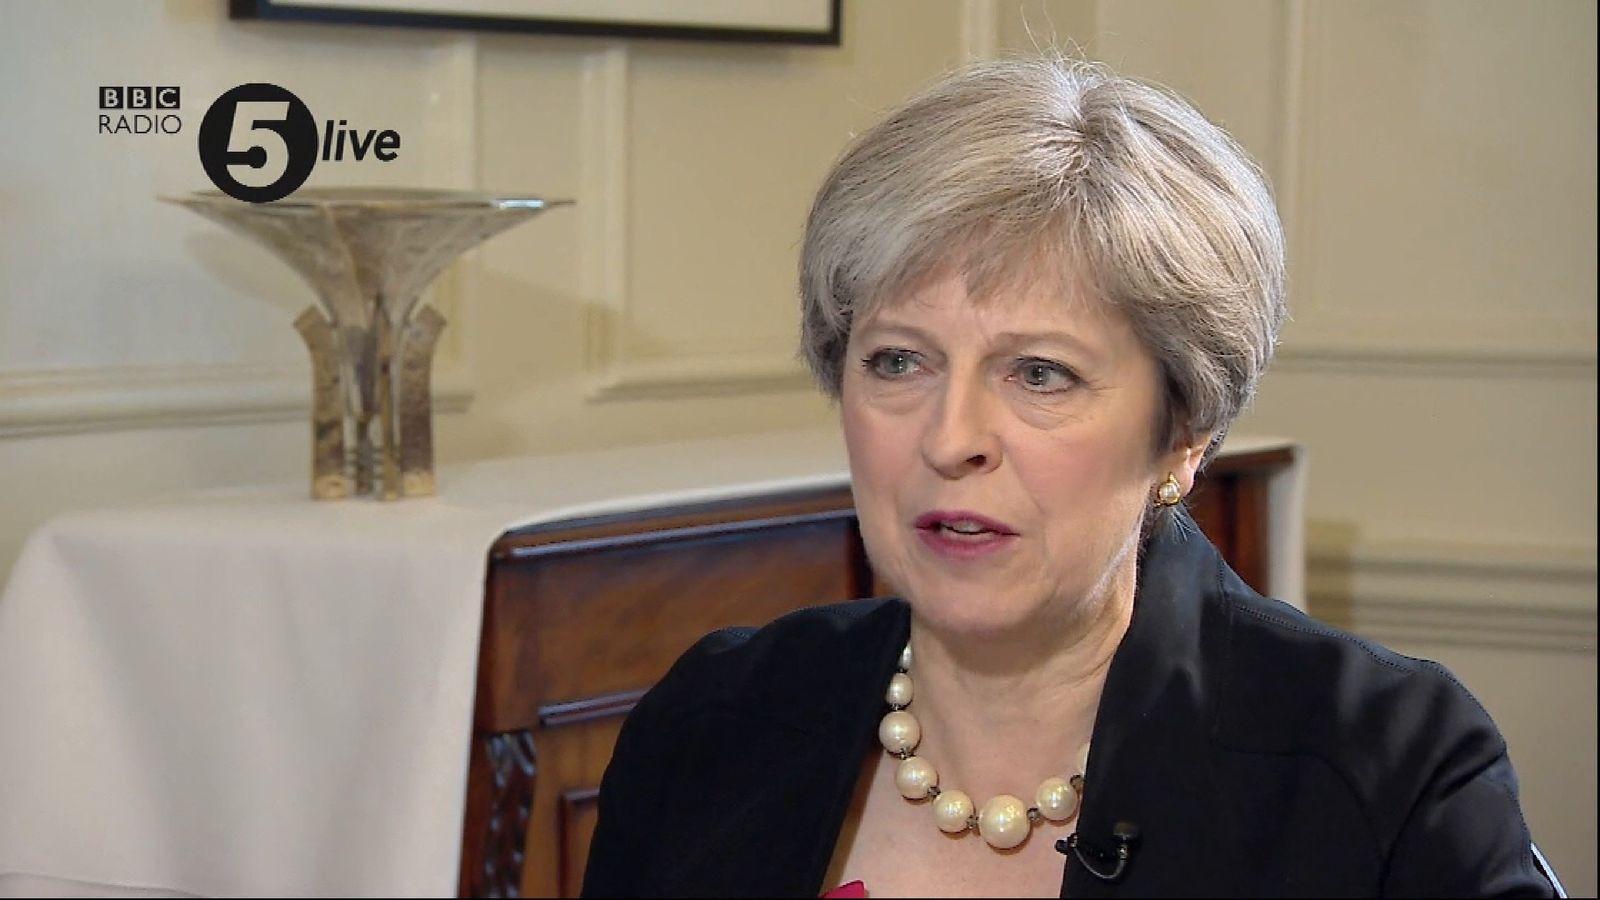 Theresa May says she shed a tear after hearing the exit poll for June's election